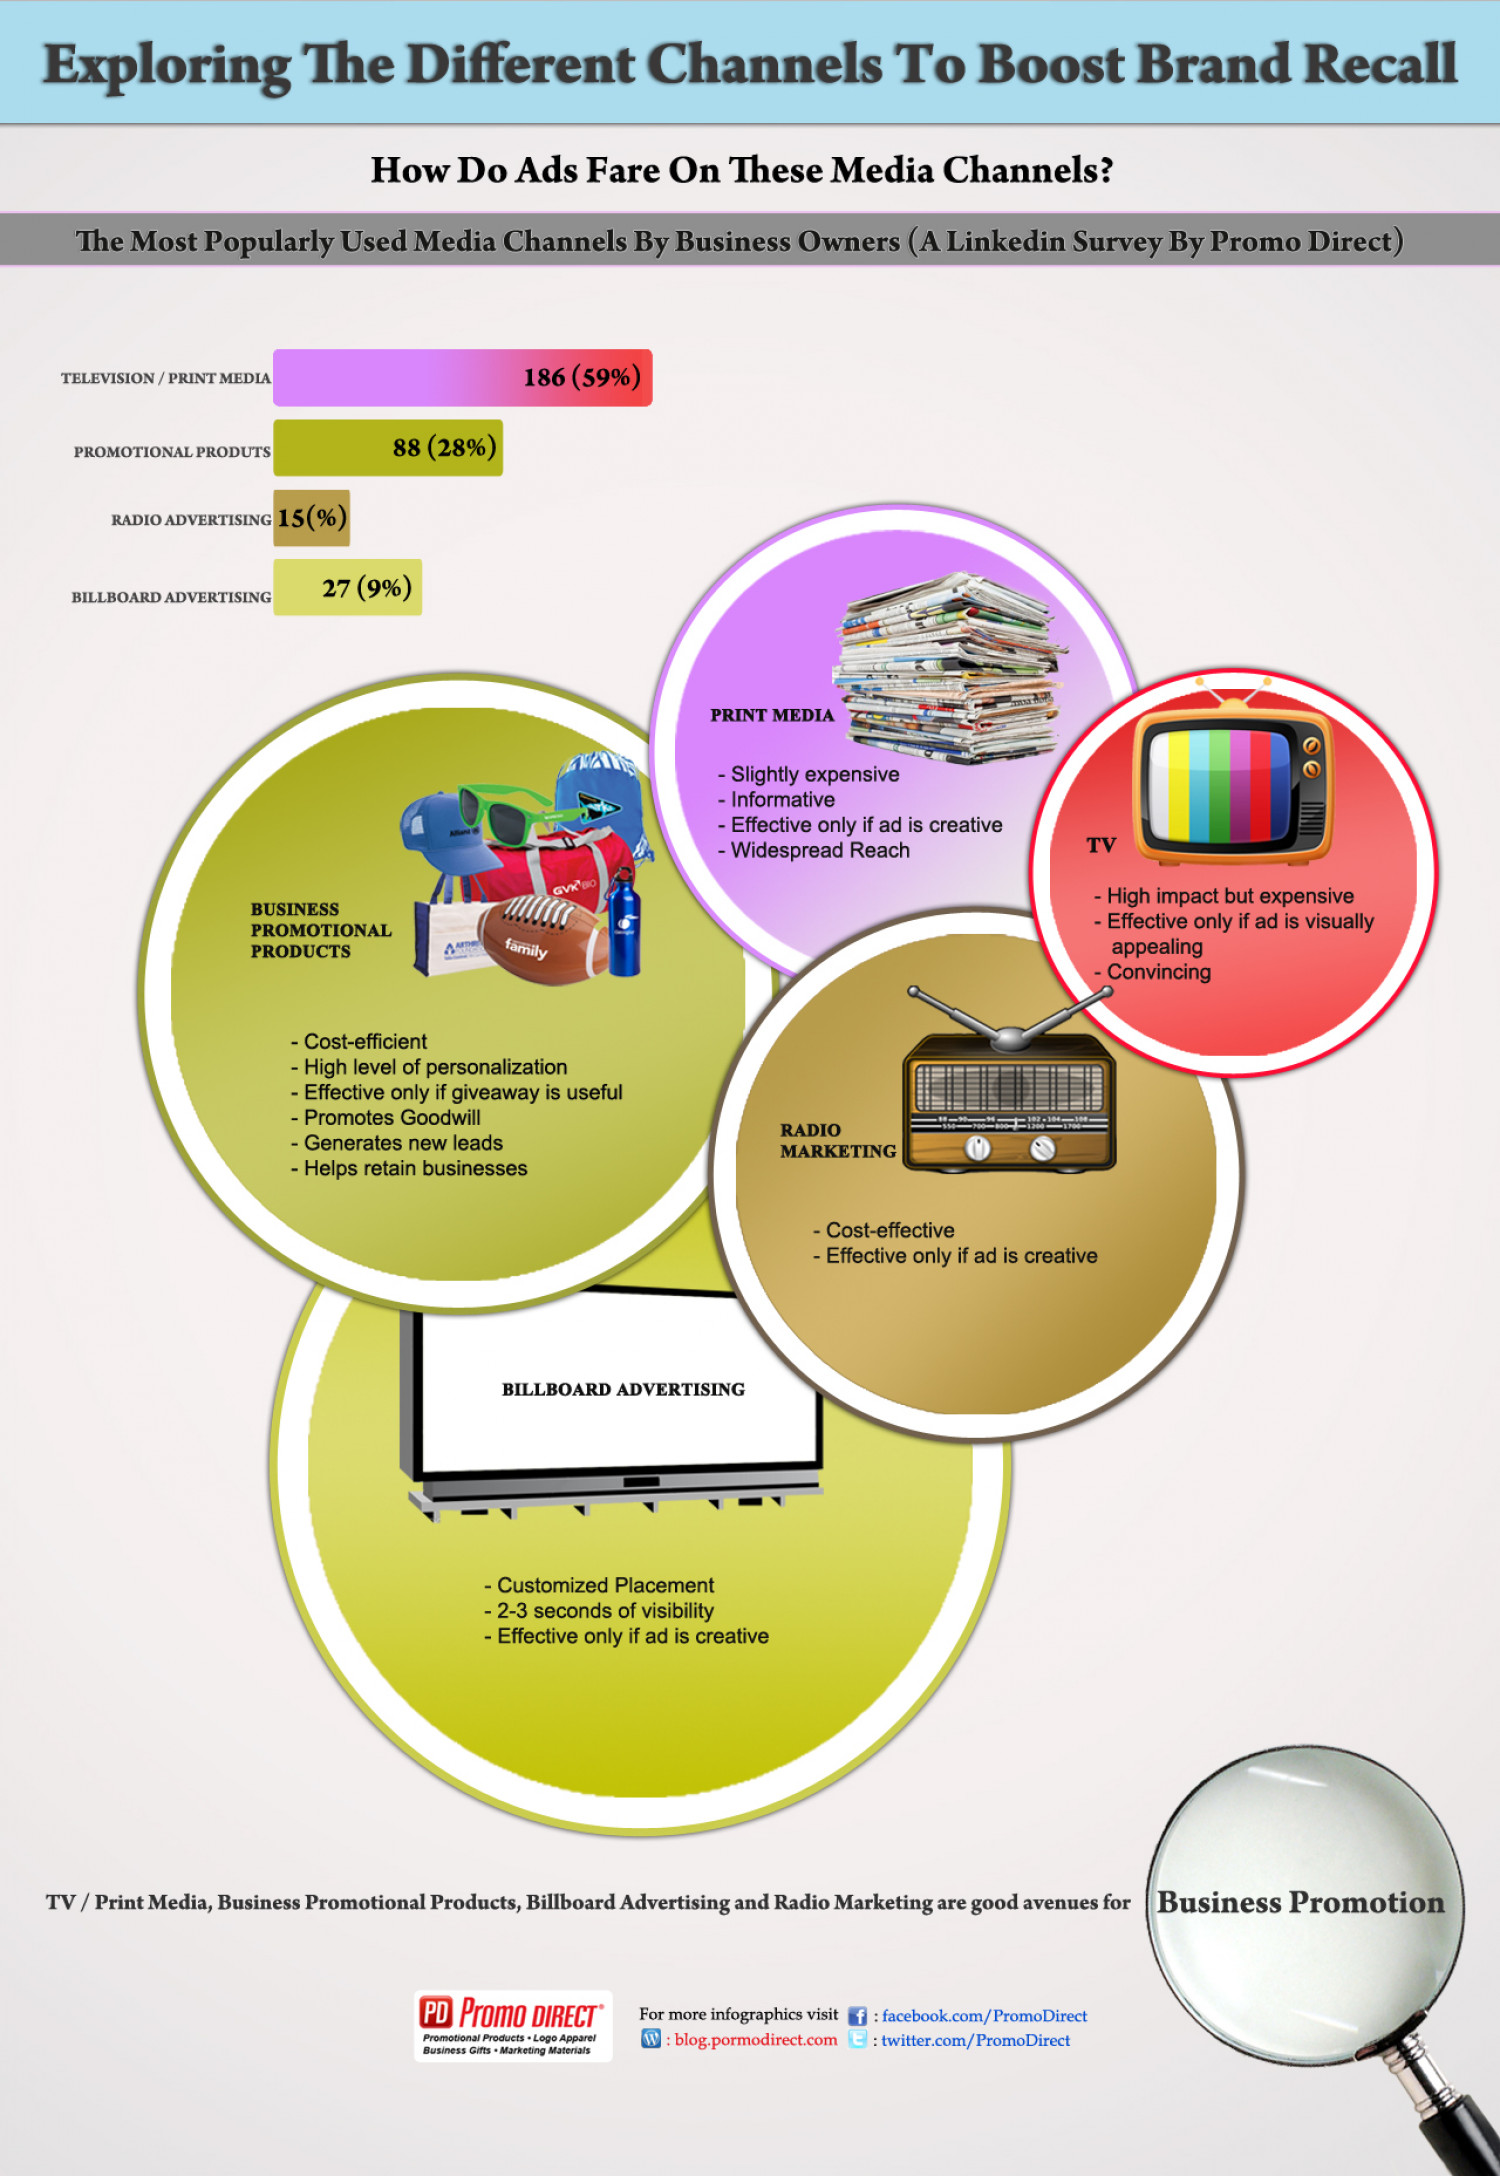 Exploring The Different Channels To Boost Brand Recall Infographic